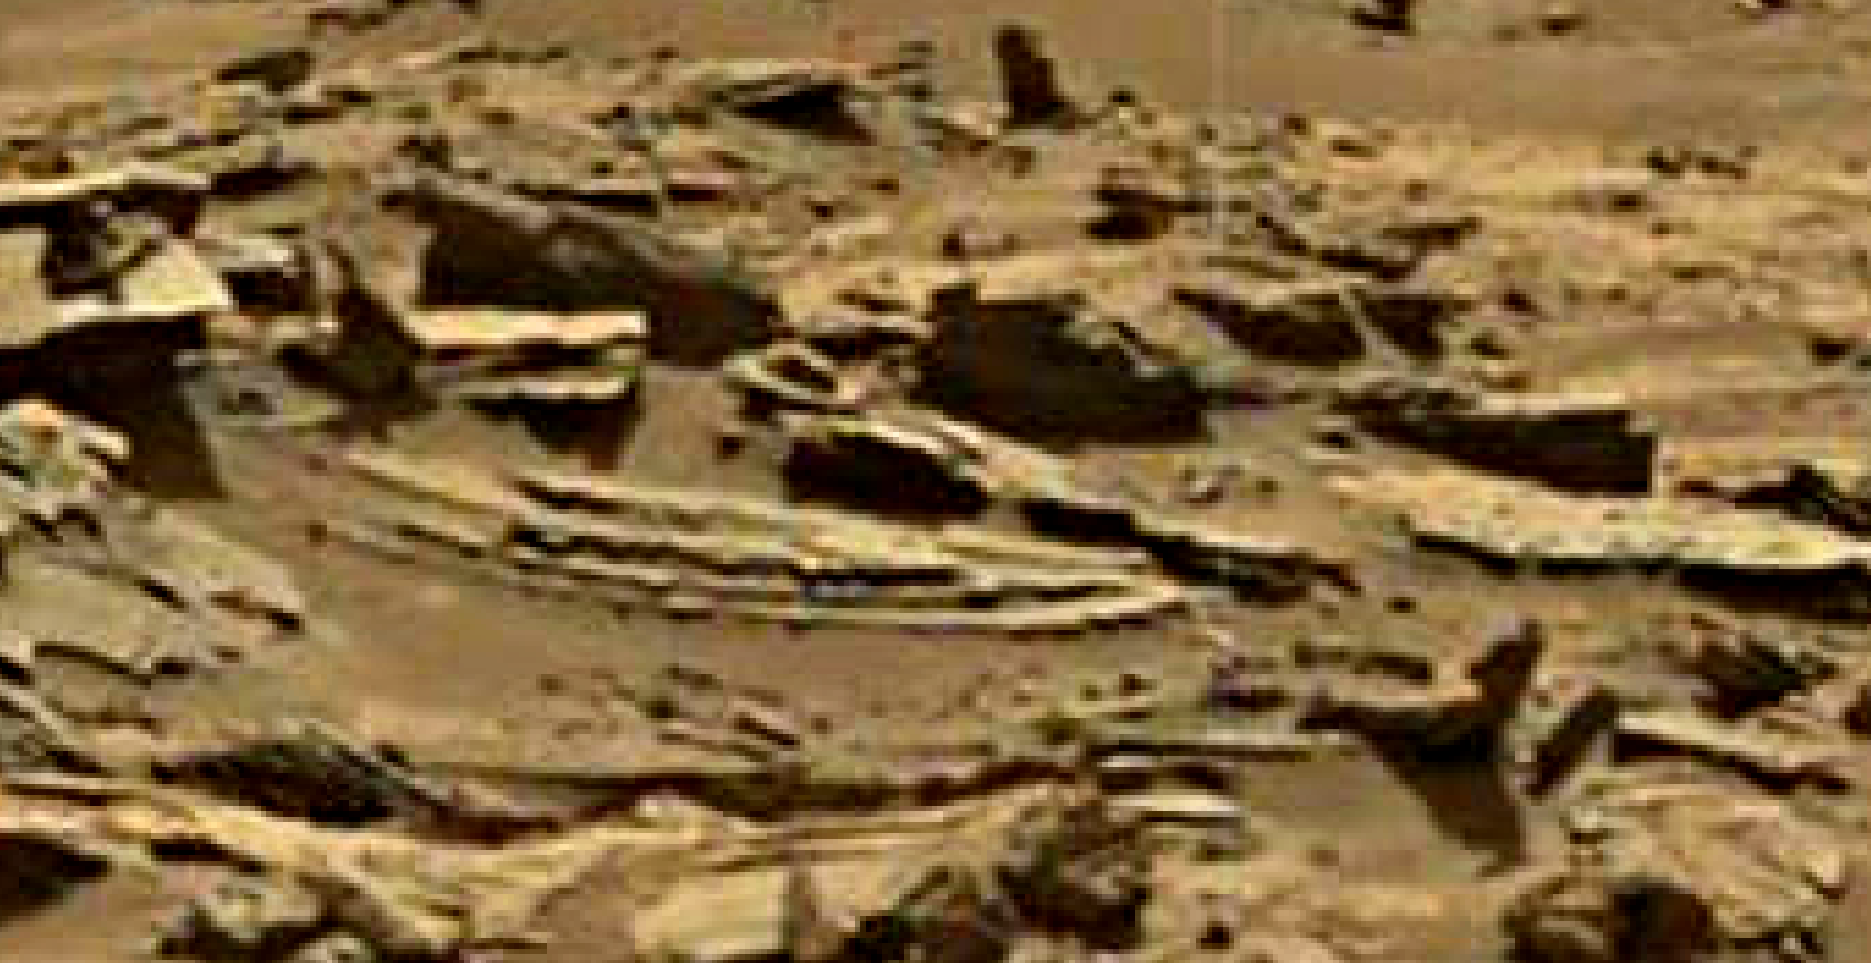 mars sol 1344 anomaly-artifacts 2b was life on mars